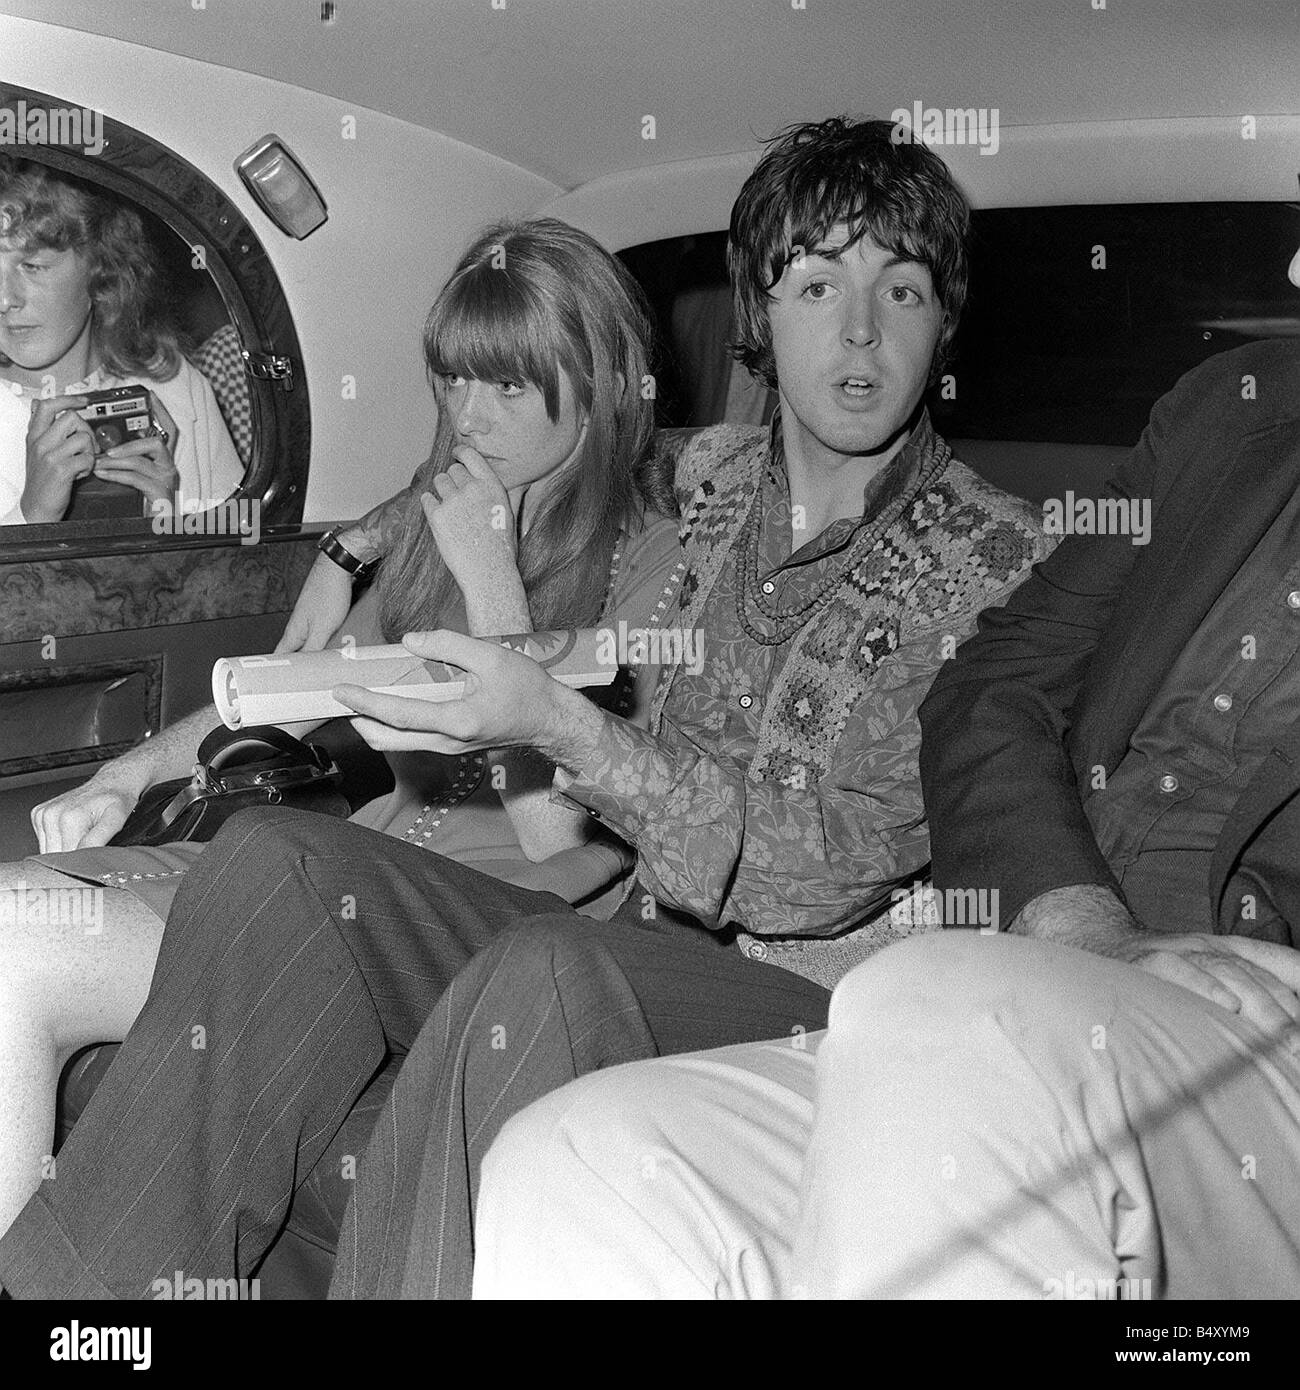 The Beatles Paul McCartney With Arm Around Girlfriend Aug 1968 In Back Of Car